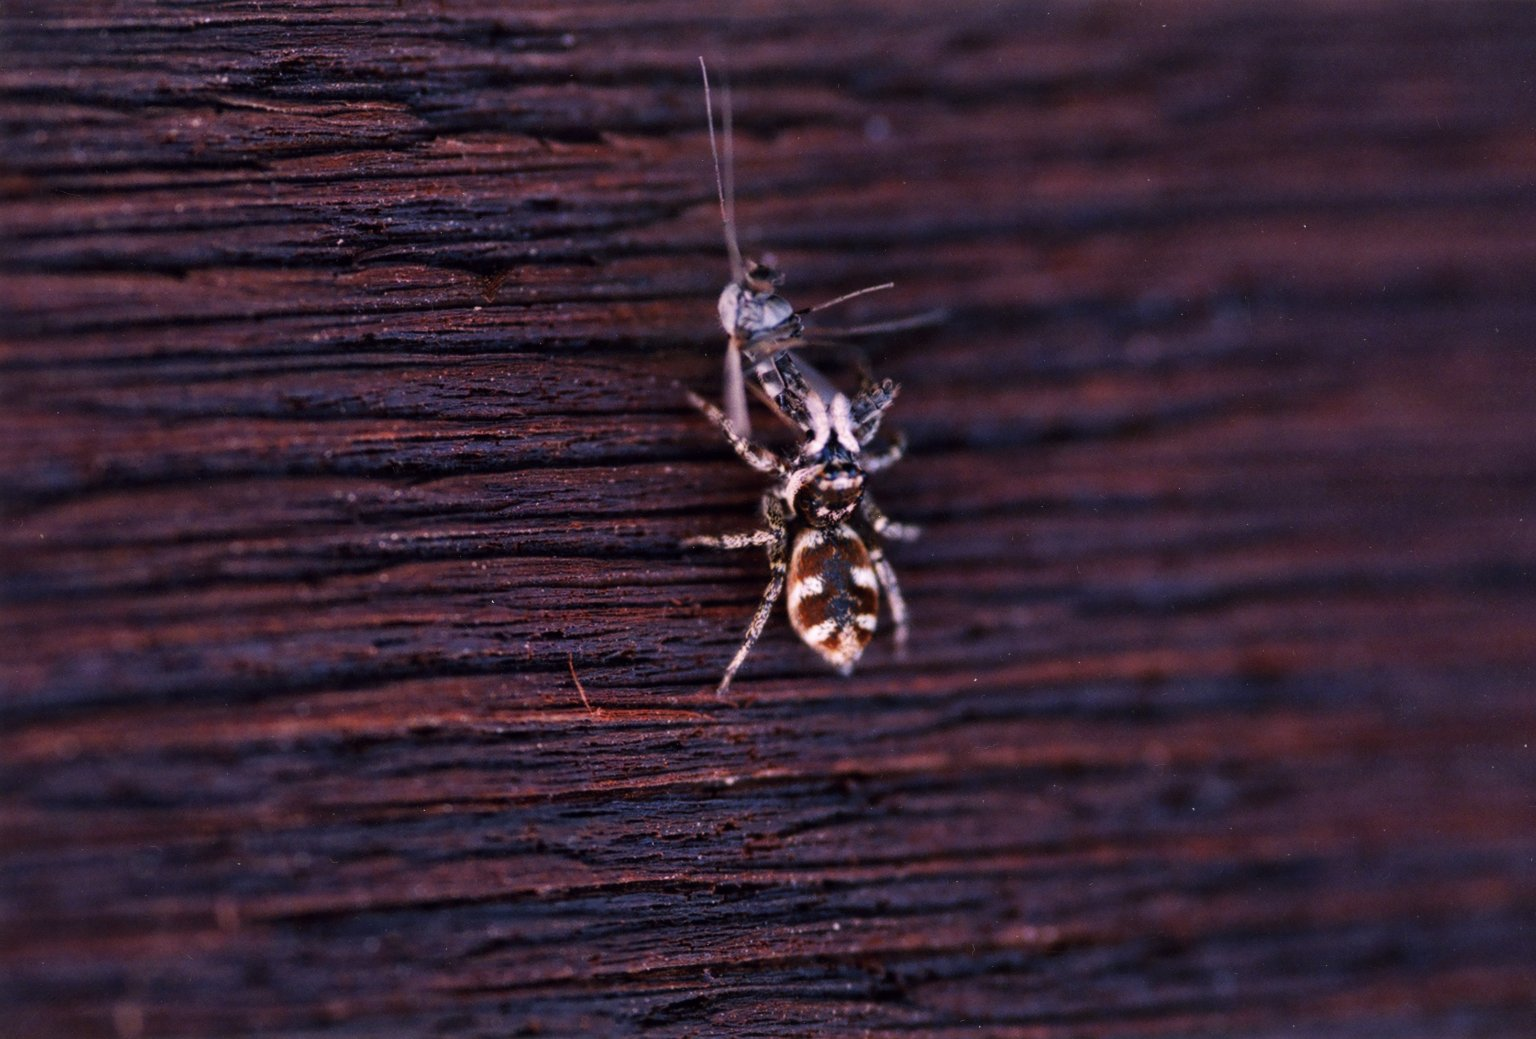 Close up of unidentified spider with insect